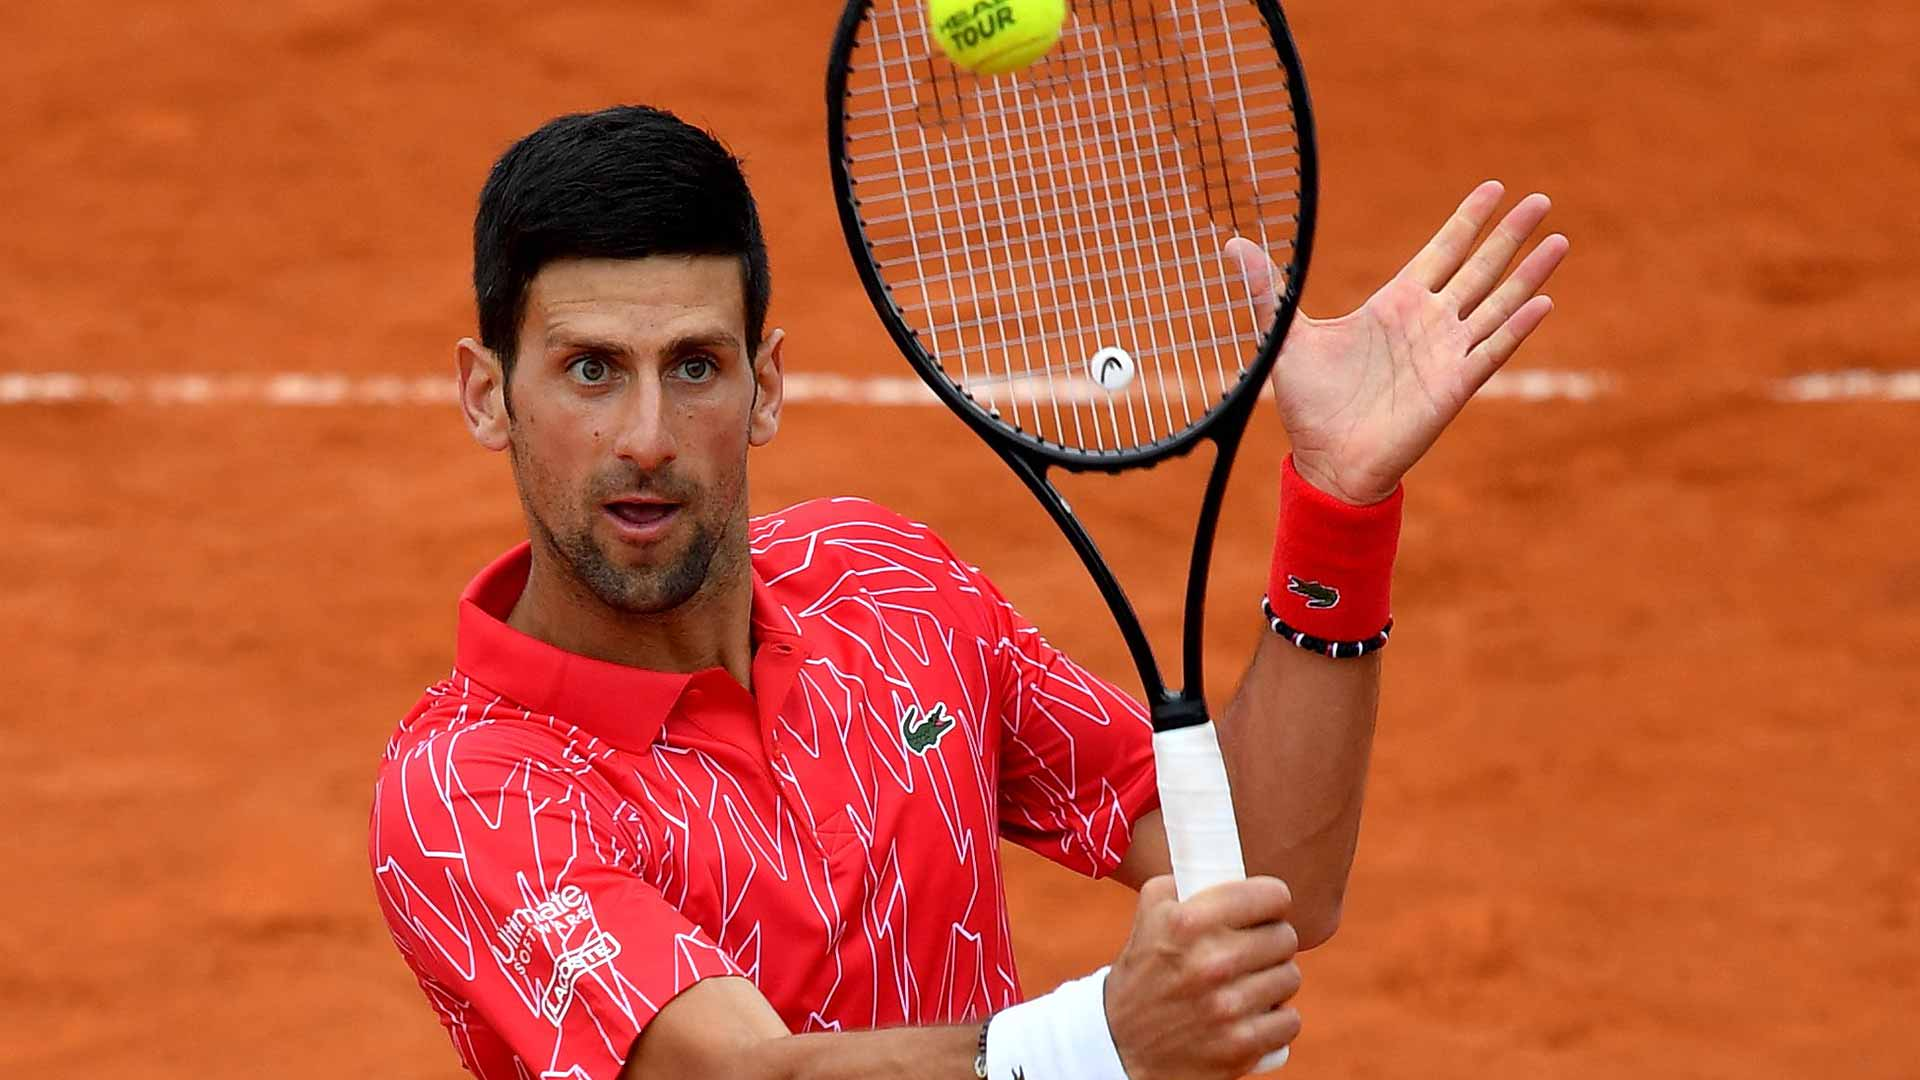 Djokovic adria tour